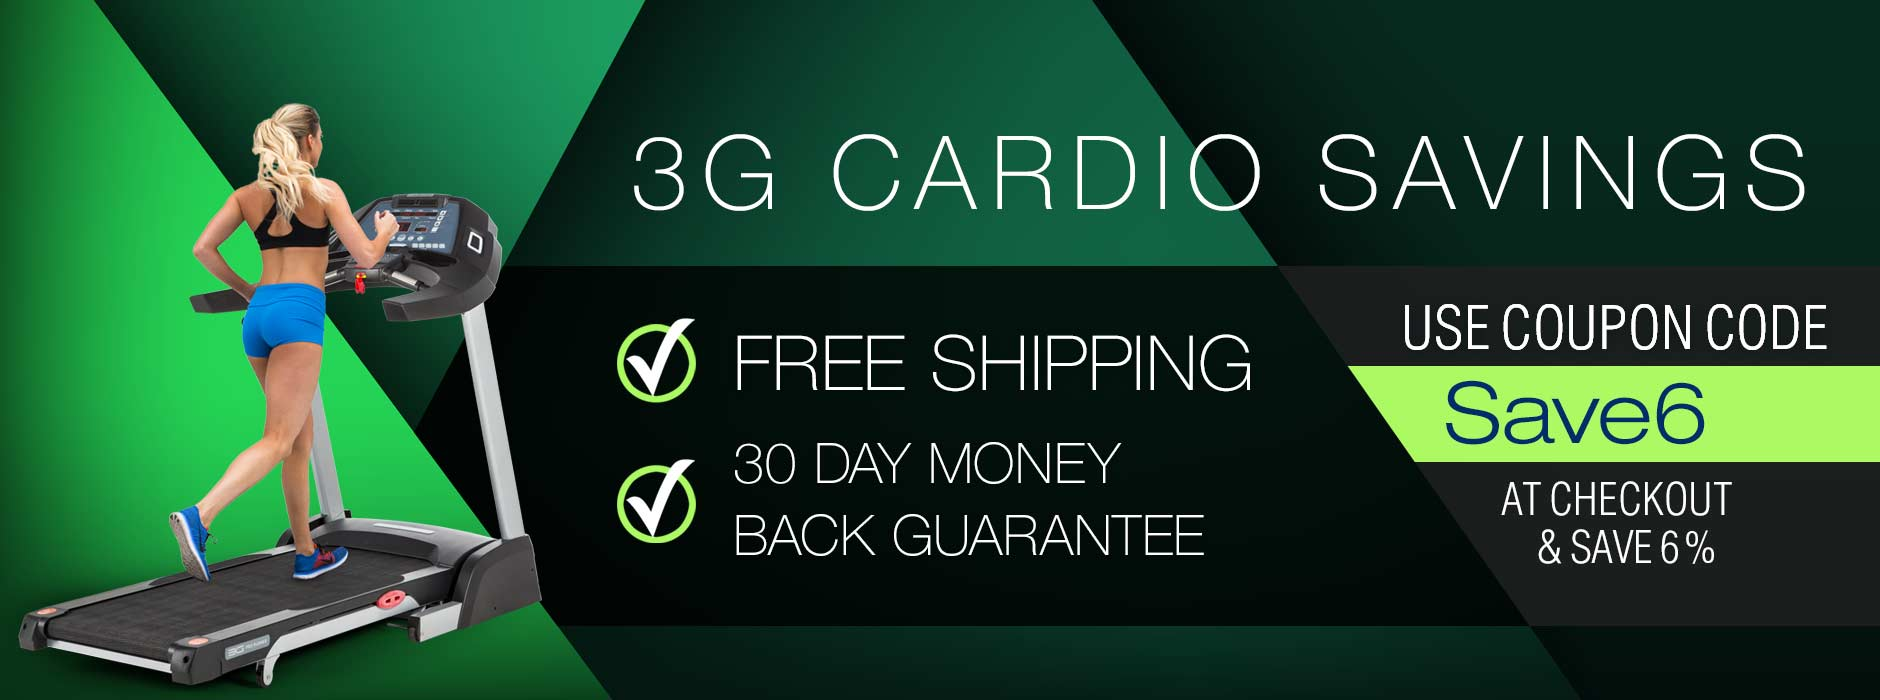 3G Cardio Fitness Equipment Savings